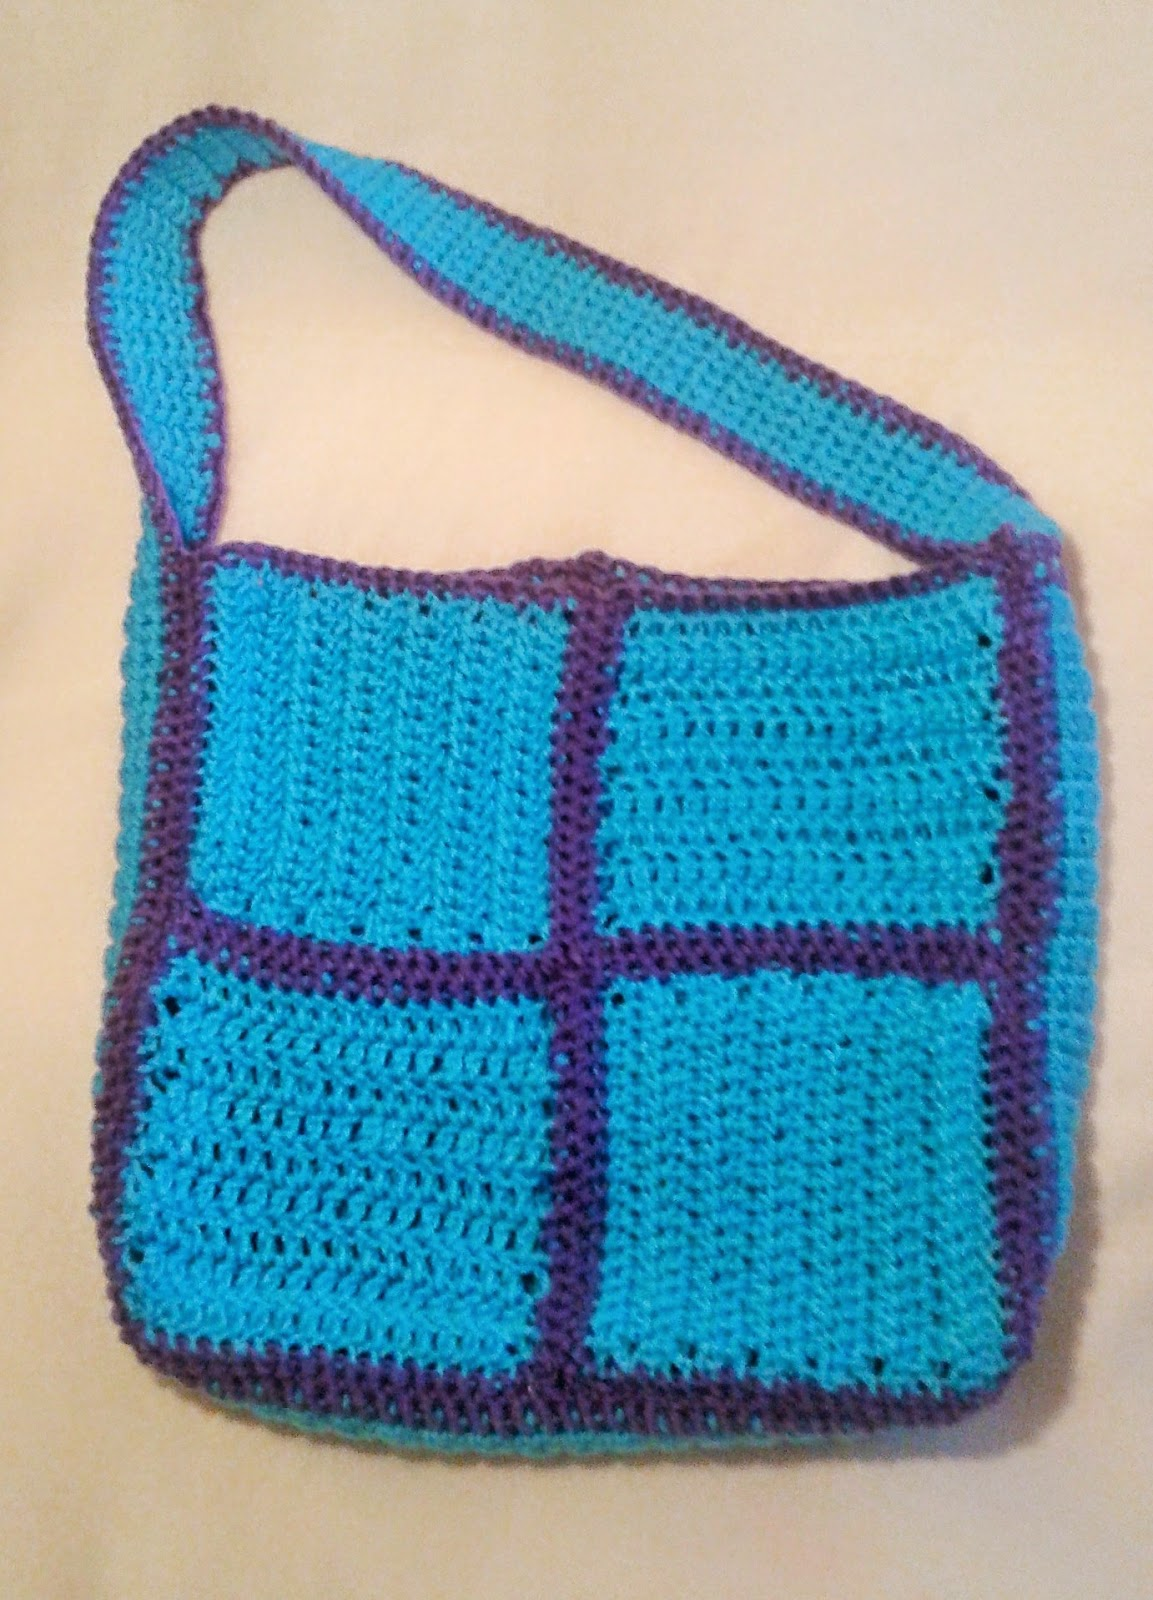 Learn to Crochet Part 6 Sewing Crochet Pieces Together Crochet Along Tutorial